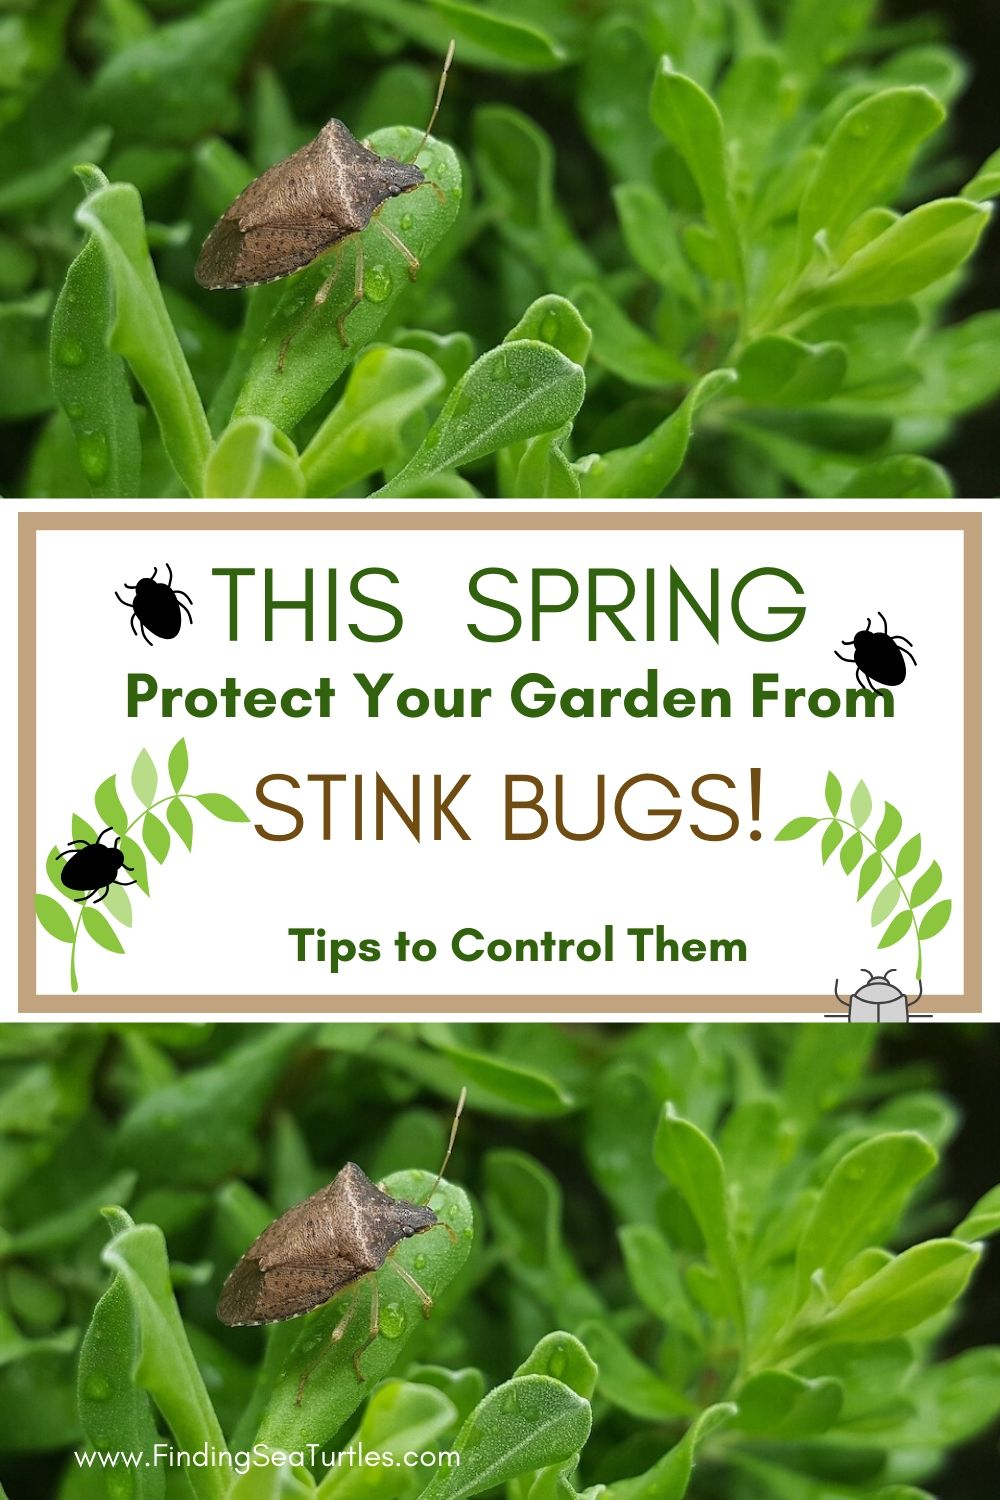 This Spring Protect Your Garden From Stink Bugs #Garden #Plants #Gardening #GardenPests #StinkBugs #StoptheBMSB #ControltheStinkBug